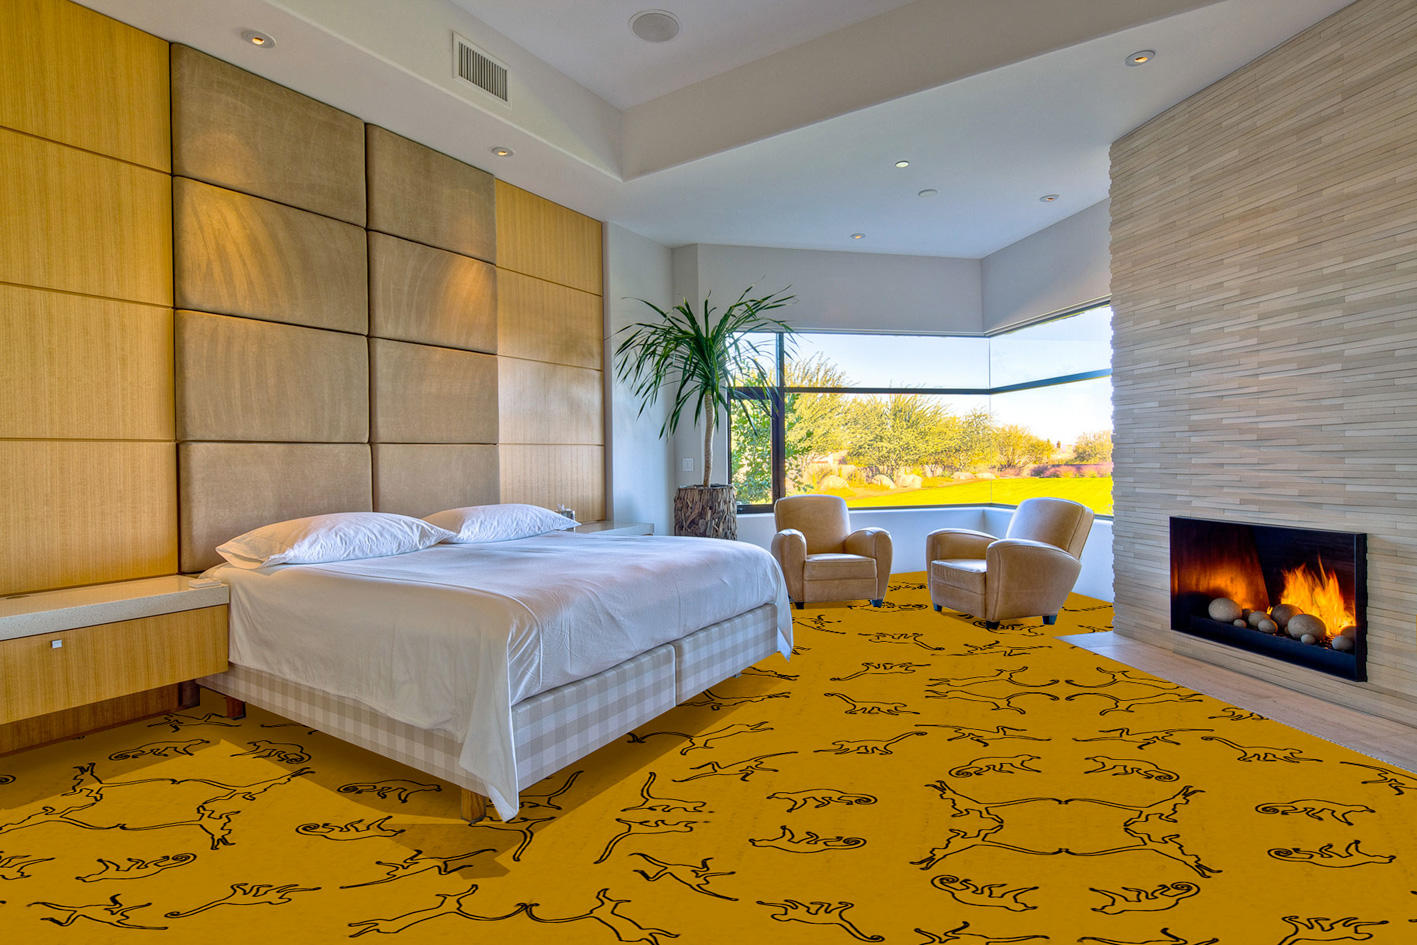 Yellow Monkey Carpet divers Thierry Bisch painter animals painting art decoration hotel design interior luxury nature biodiversity conservation